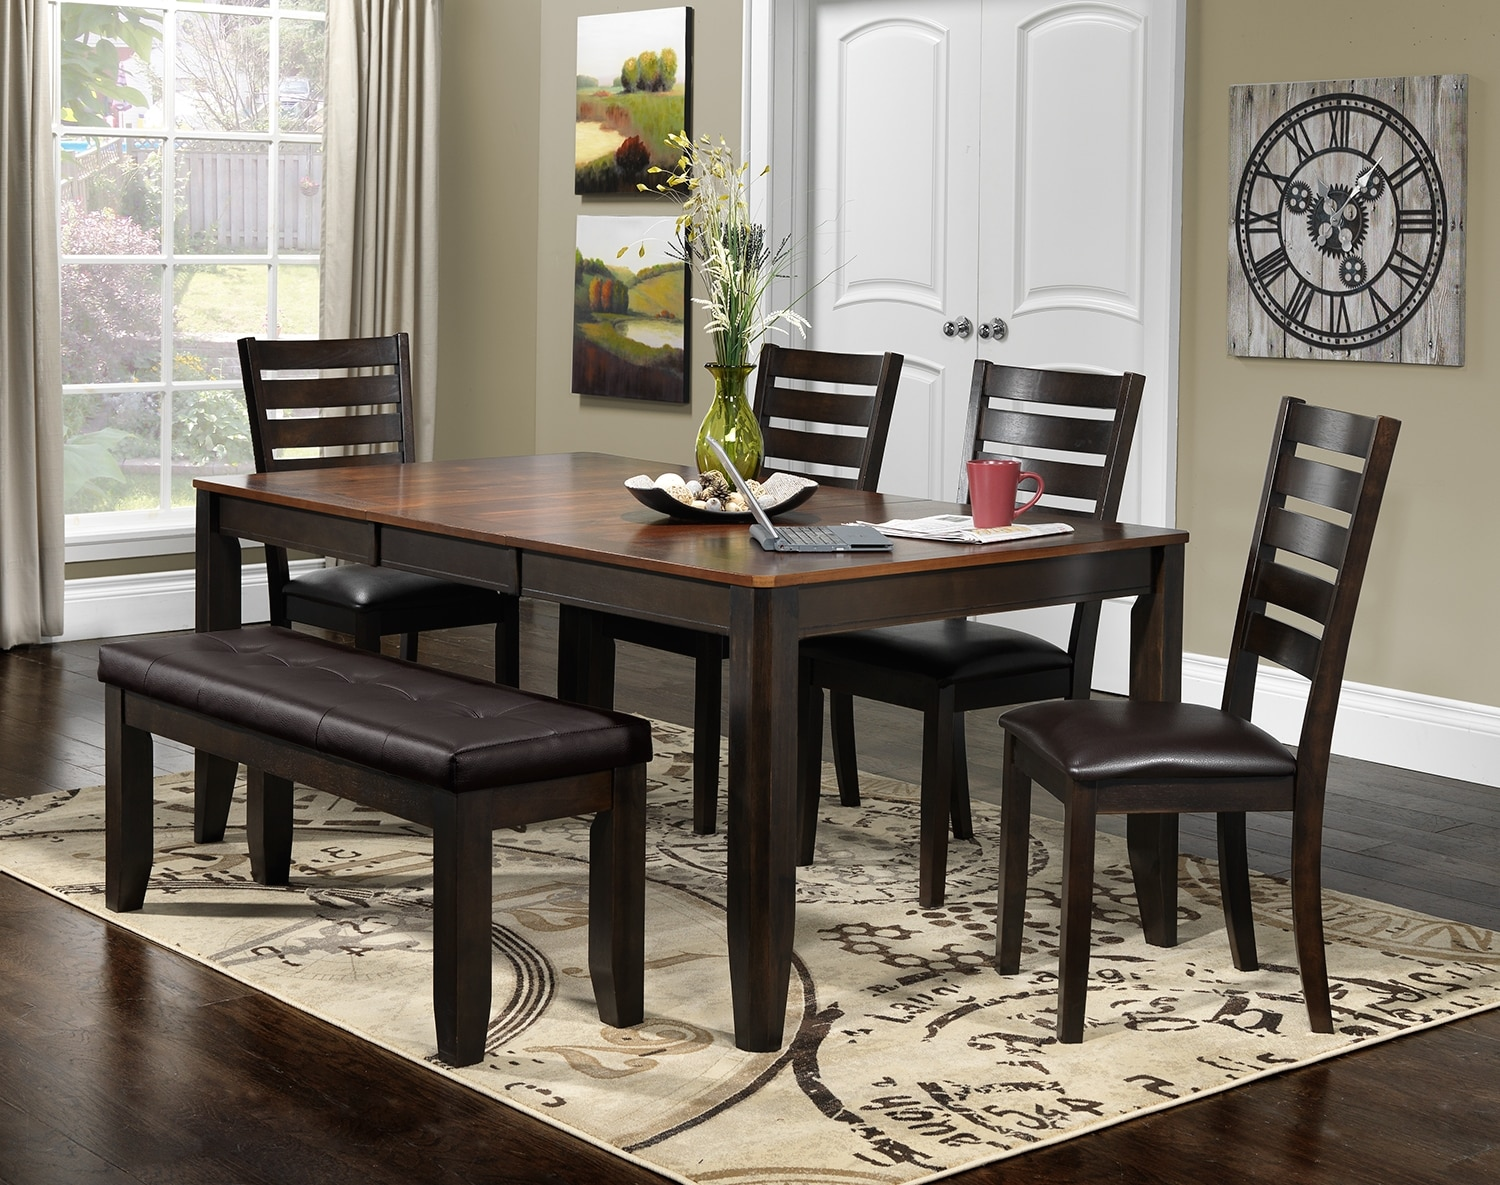 Krista 6 piece dinette set dark chocolate leon 39 s for Leon s dining room tables